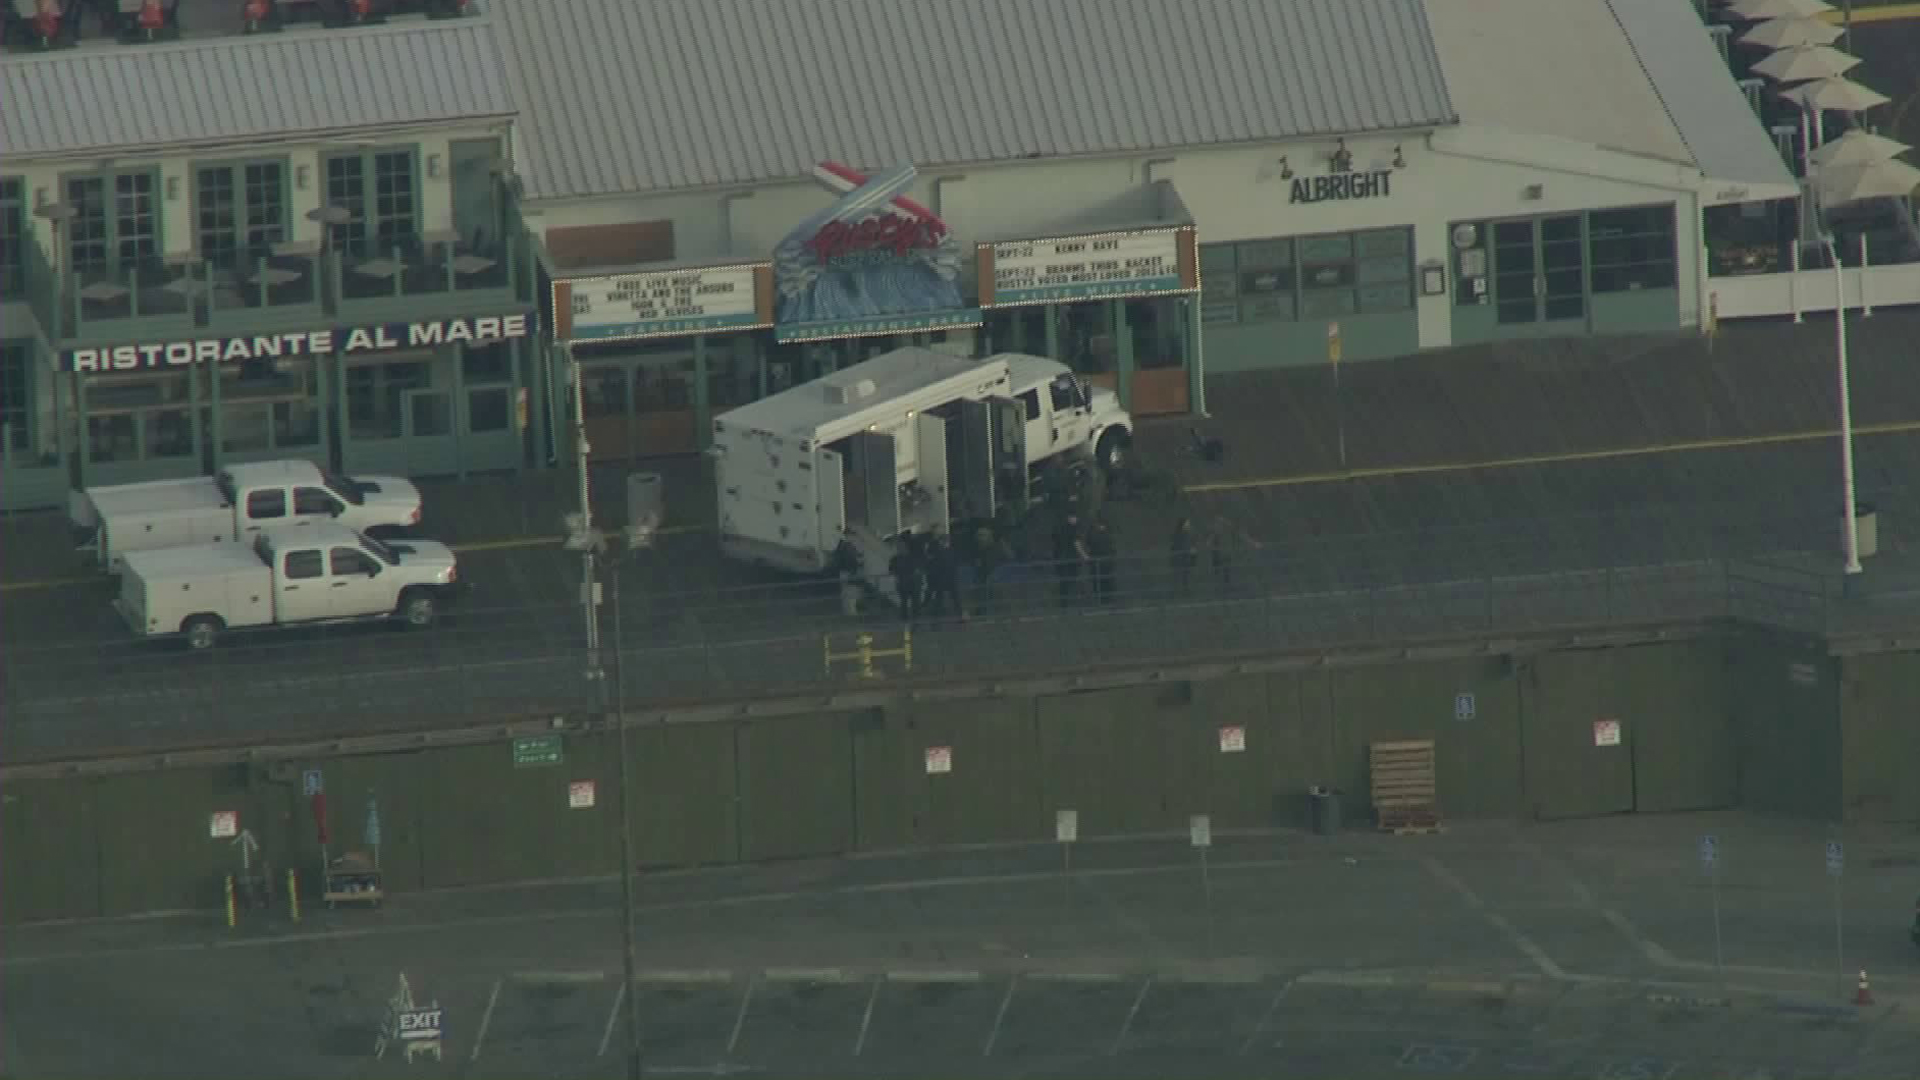 Officials respond to a bomb threat at the Santa Monica Pier on Sept. 11, 2017 and pedestrian traffic was cleared from the area. (Credit: KTLA)